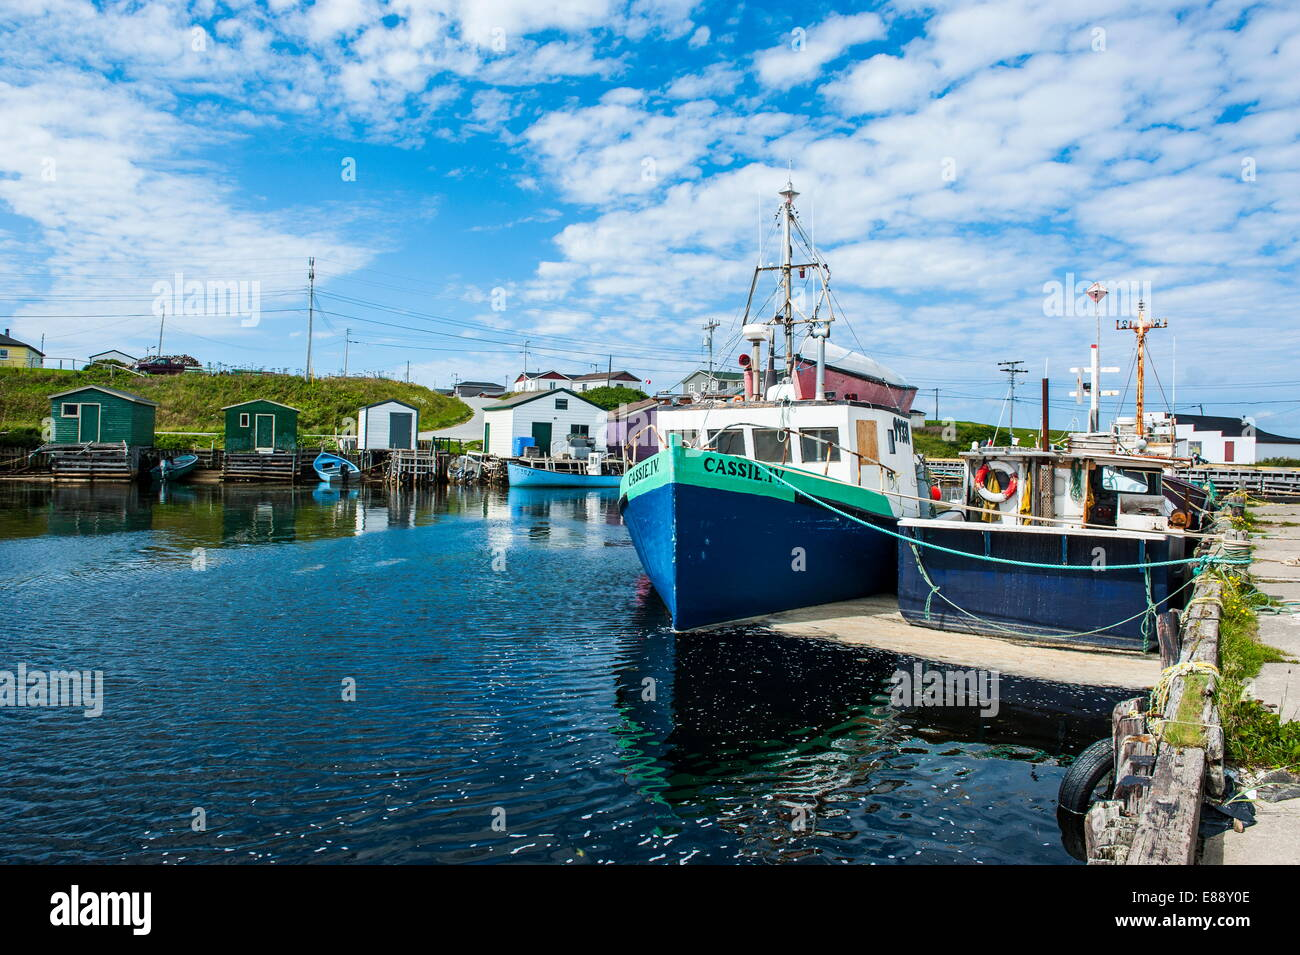 Fishing boats in the harbour of Port au Choix, Newfoundland, Canada, North America - Stock Image